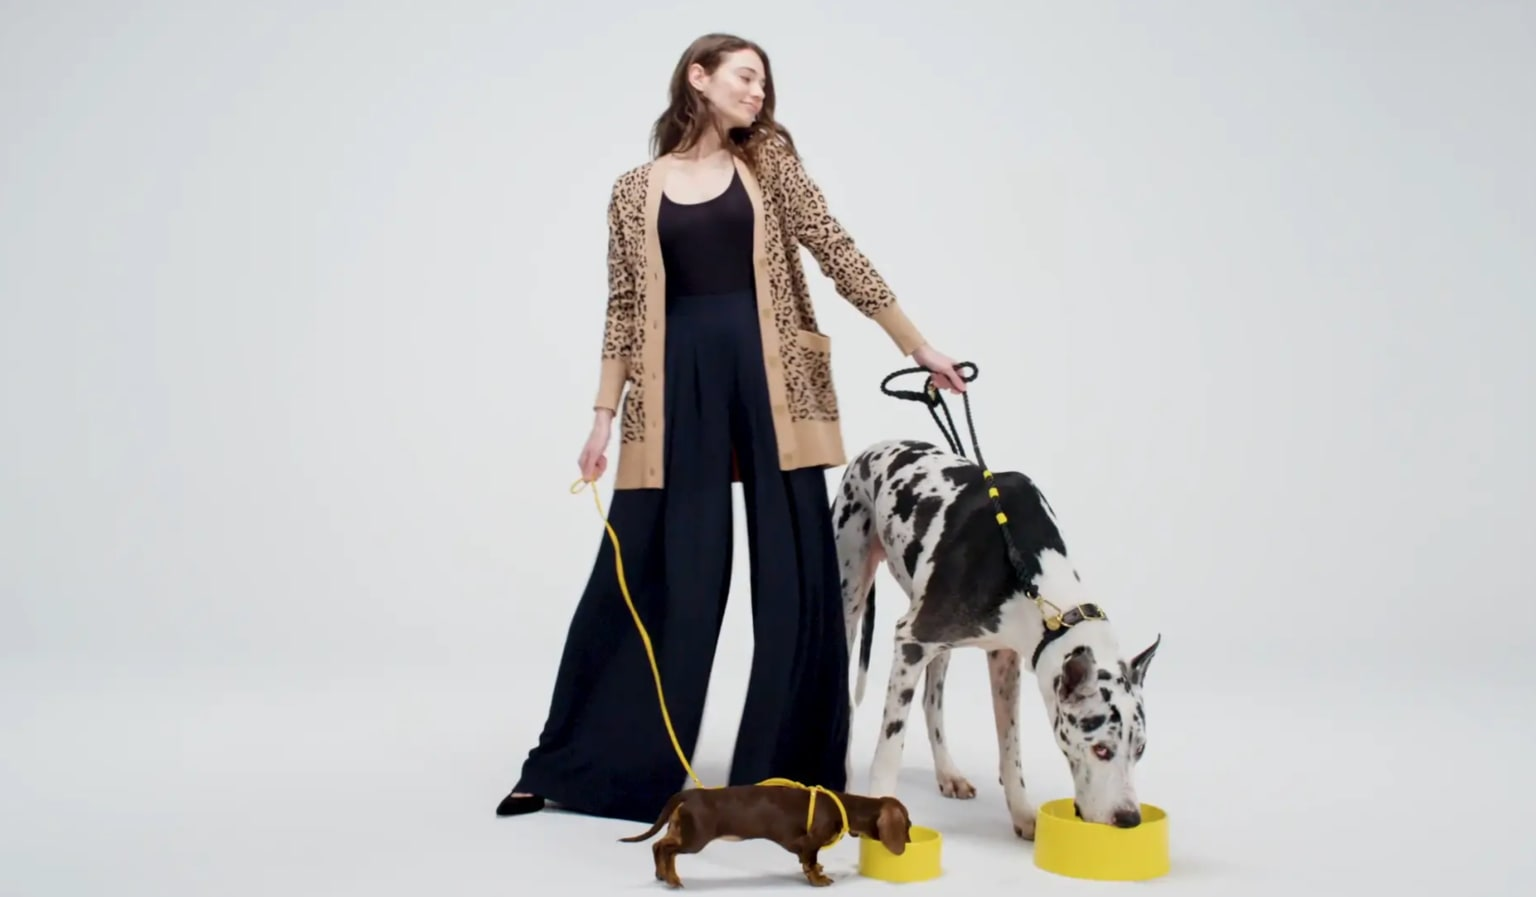 J Crew - Style Hacks - Proportion Play 4 Ways (Web Content)